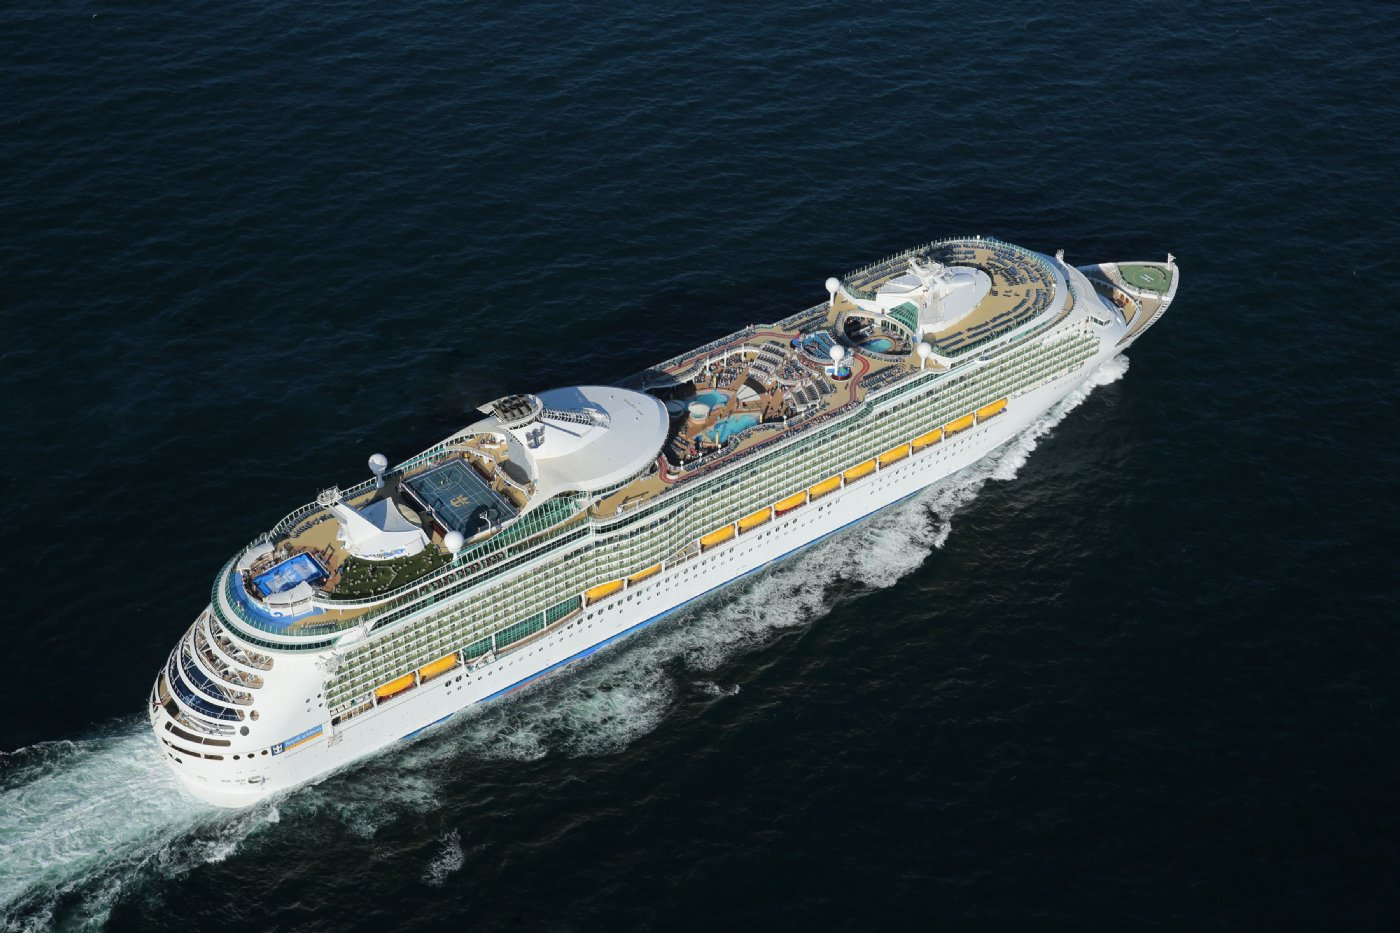 Voyager Of The Seas Gemisi